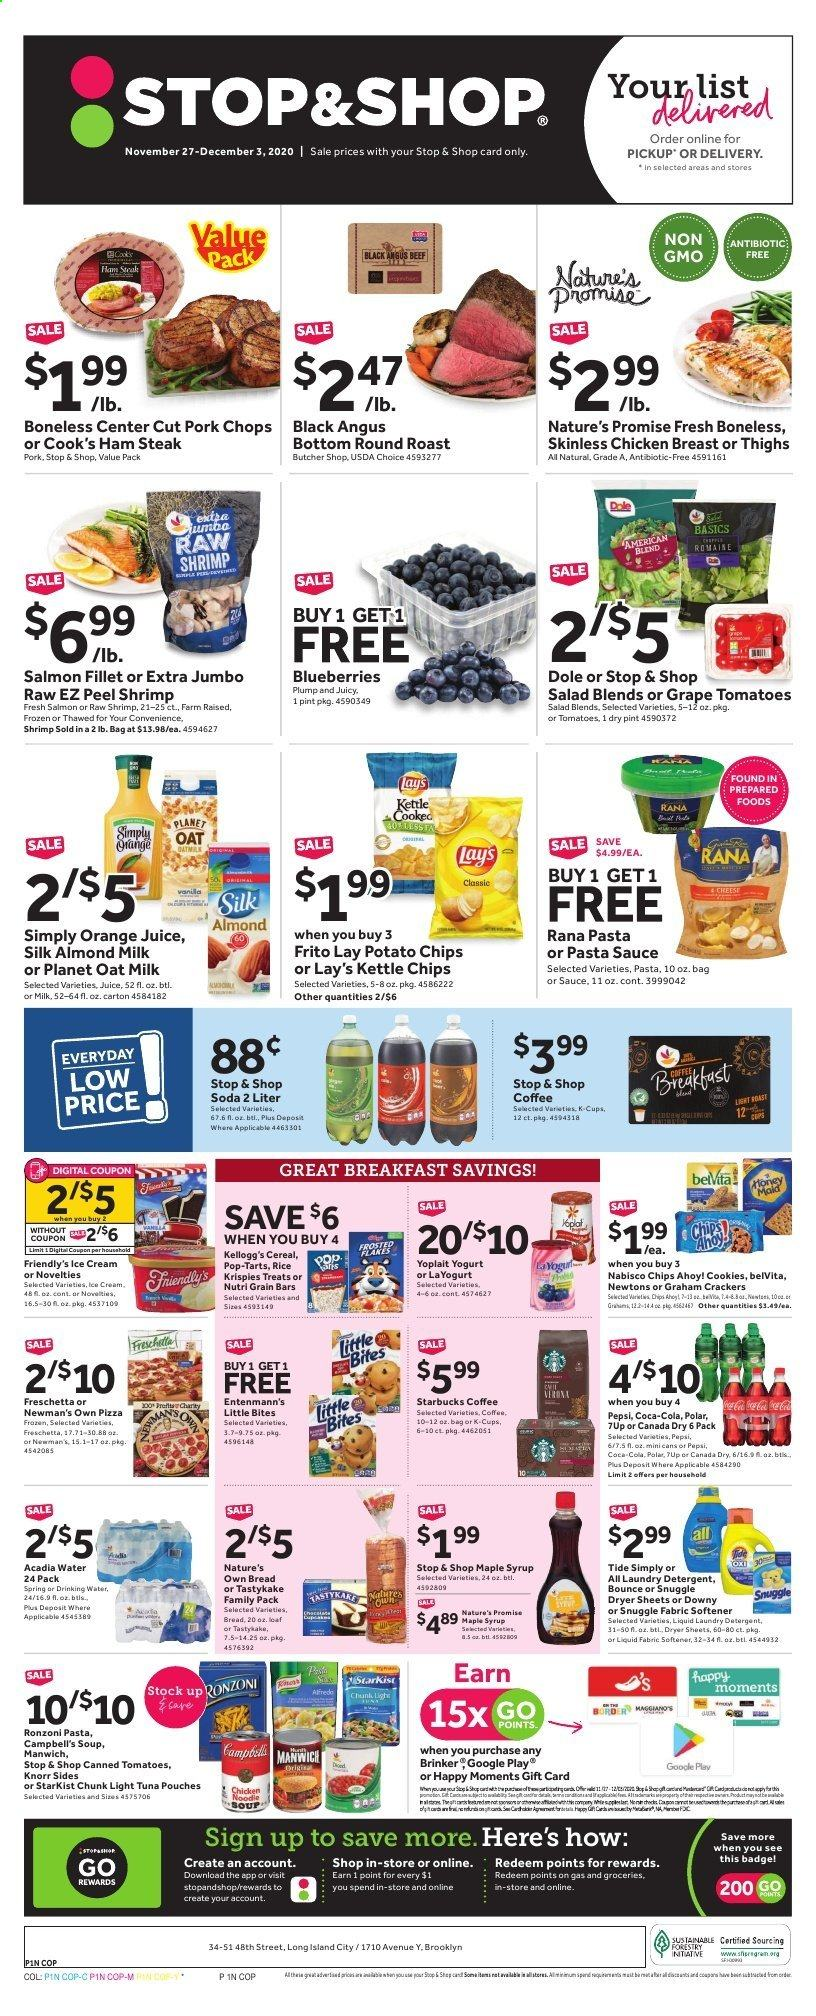 Stop & Shop Flyer - 11.27.2020 - 12.03.2020 - Sales products - almond milk, beef meat, blueberries, bread, Campbell's, Canada Dry, coca-cola, coffee, cookies, detergent, Downy, frozen, graham crackers, grapes, maple syrup, rice, salmon, salmon fillet, Snuggle, starbucks, Tide, tomatoes, tuna, ham, ham steaks, ice cream, pin, pizza, pork chops, pork meat, potato chips, chicken, chicken breast, pasta sauce, Pepsi, orange juice, orange, chips, soda, steak, cheese, juice, soup, softener, pasta, light tuna, Lay's, Knorr, salad, sauce, Dole, laundry detergent, shrimps, kettle, syrup, spring. Page 1.